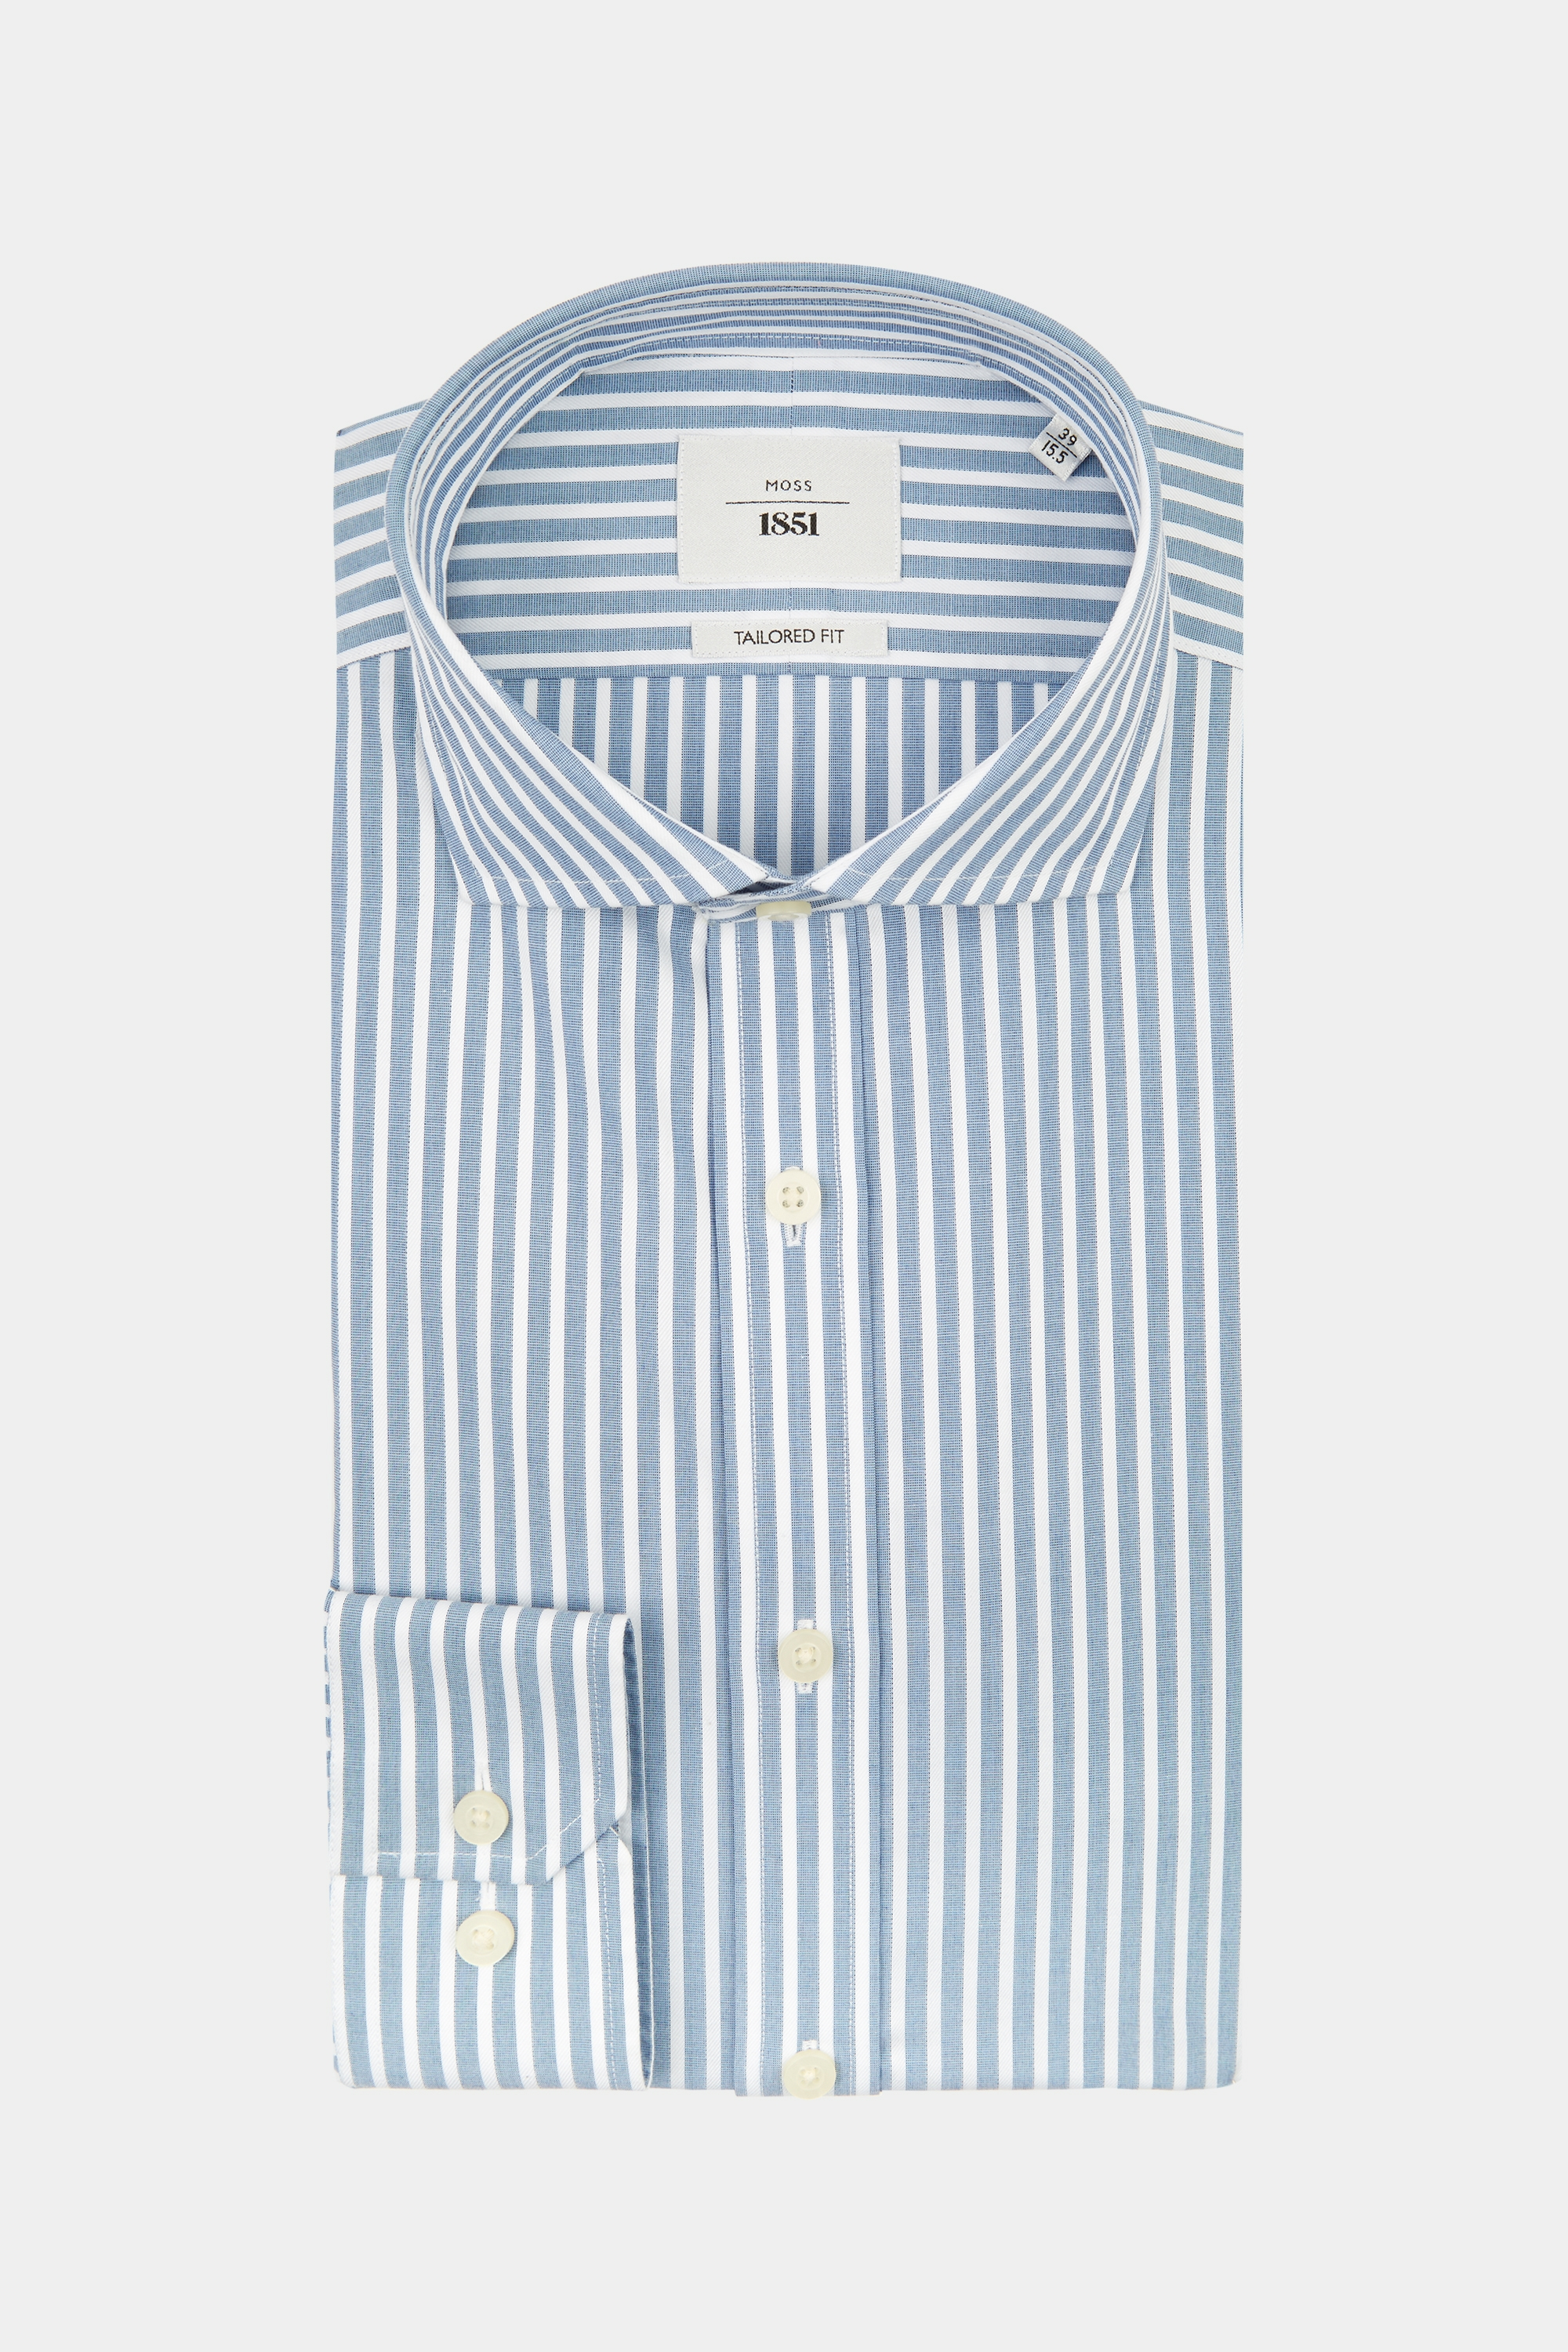 Moss Bros Moss 1851 Tailored Fit Blue Single Cuff Wide Stripe Zero Iron Shirt